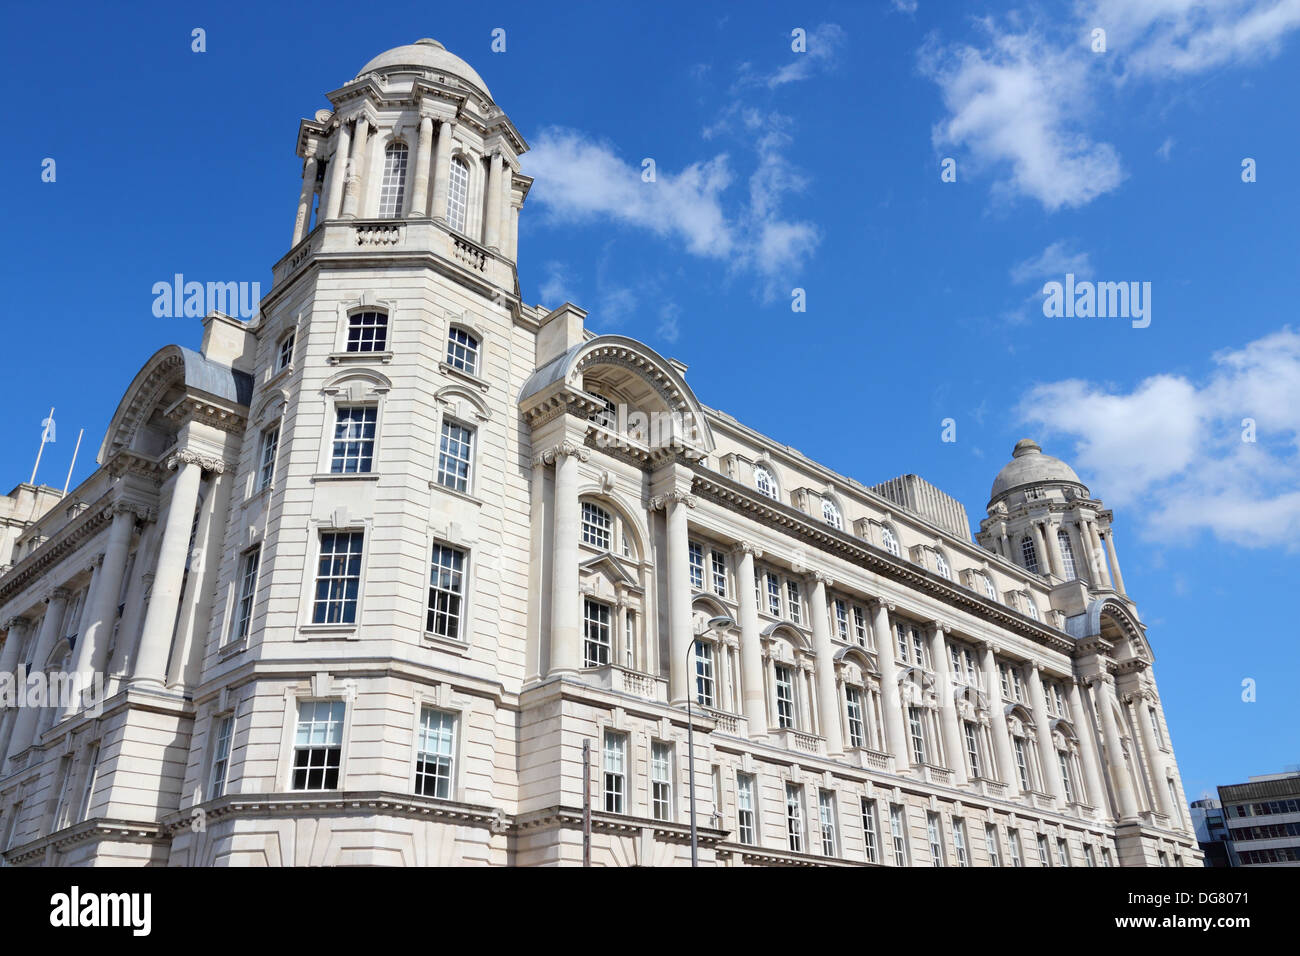 Liverpool - city in North West England (UK). Pier Head district, part of UNESCO World Heritage Site. Port of Liverpool building. - Stock Image